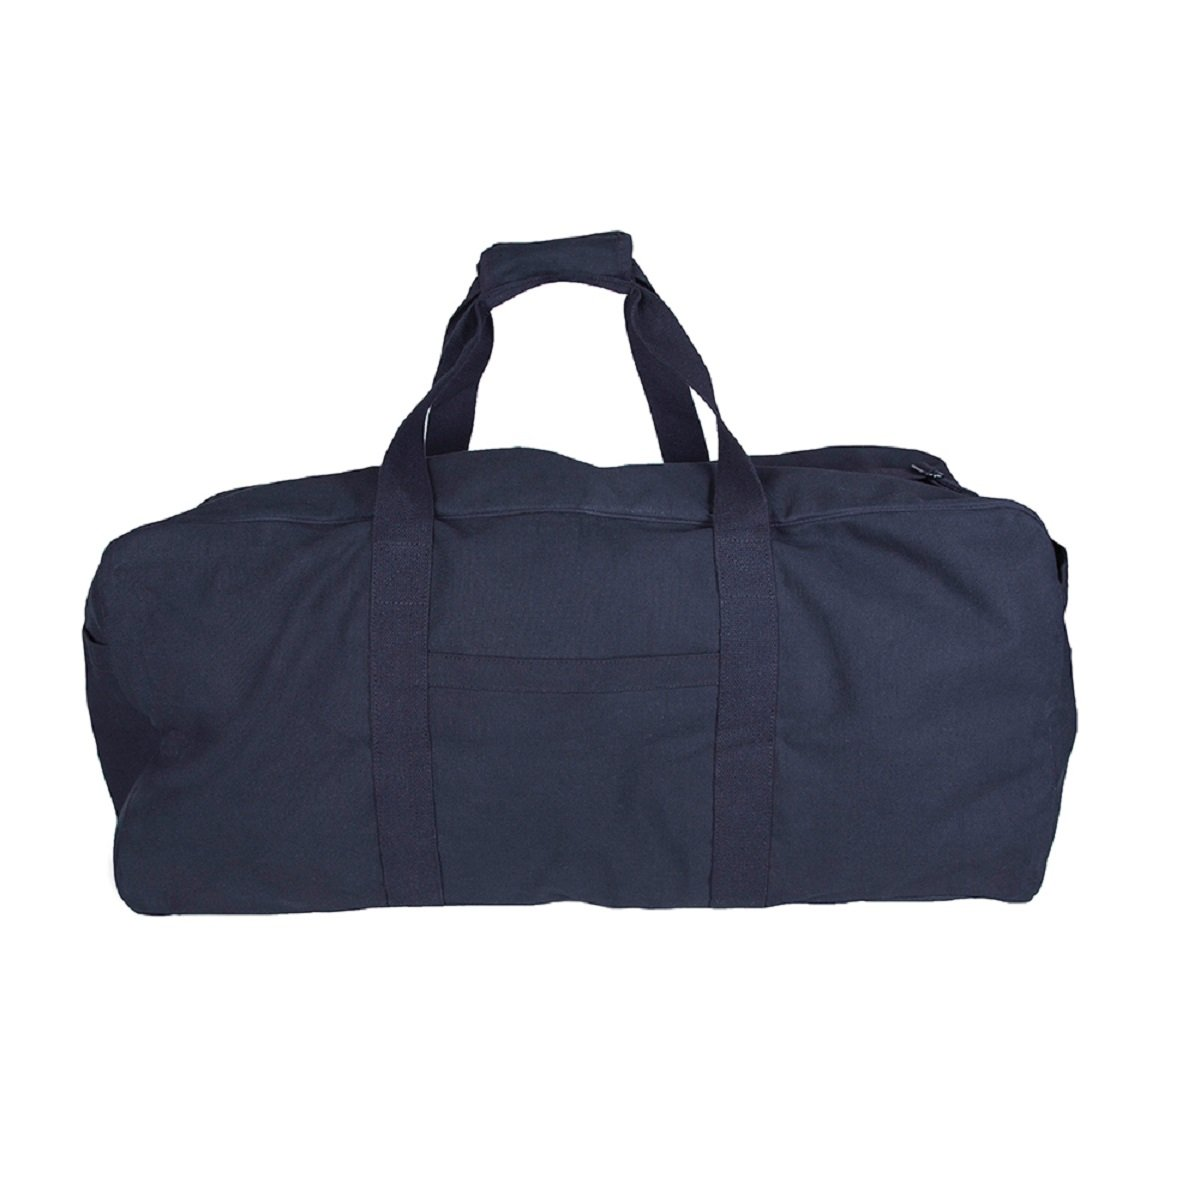 JUMBO CARGO BAG - 34 IN X 16 IN X 15 IN, Case of 6 by DollarItemDirect